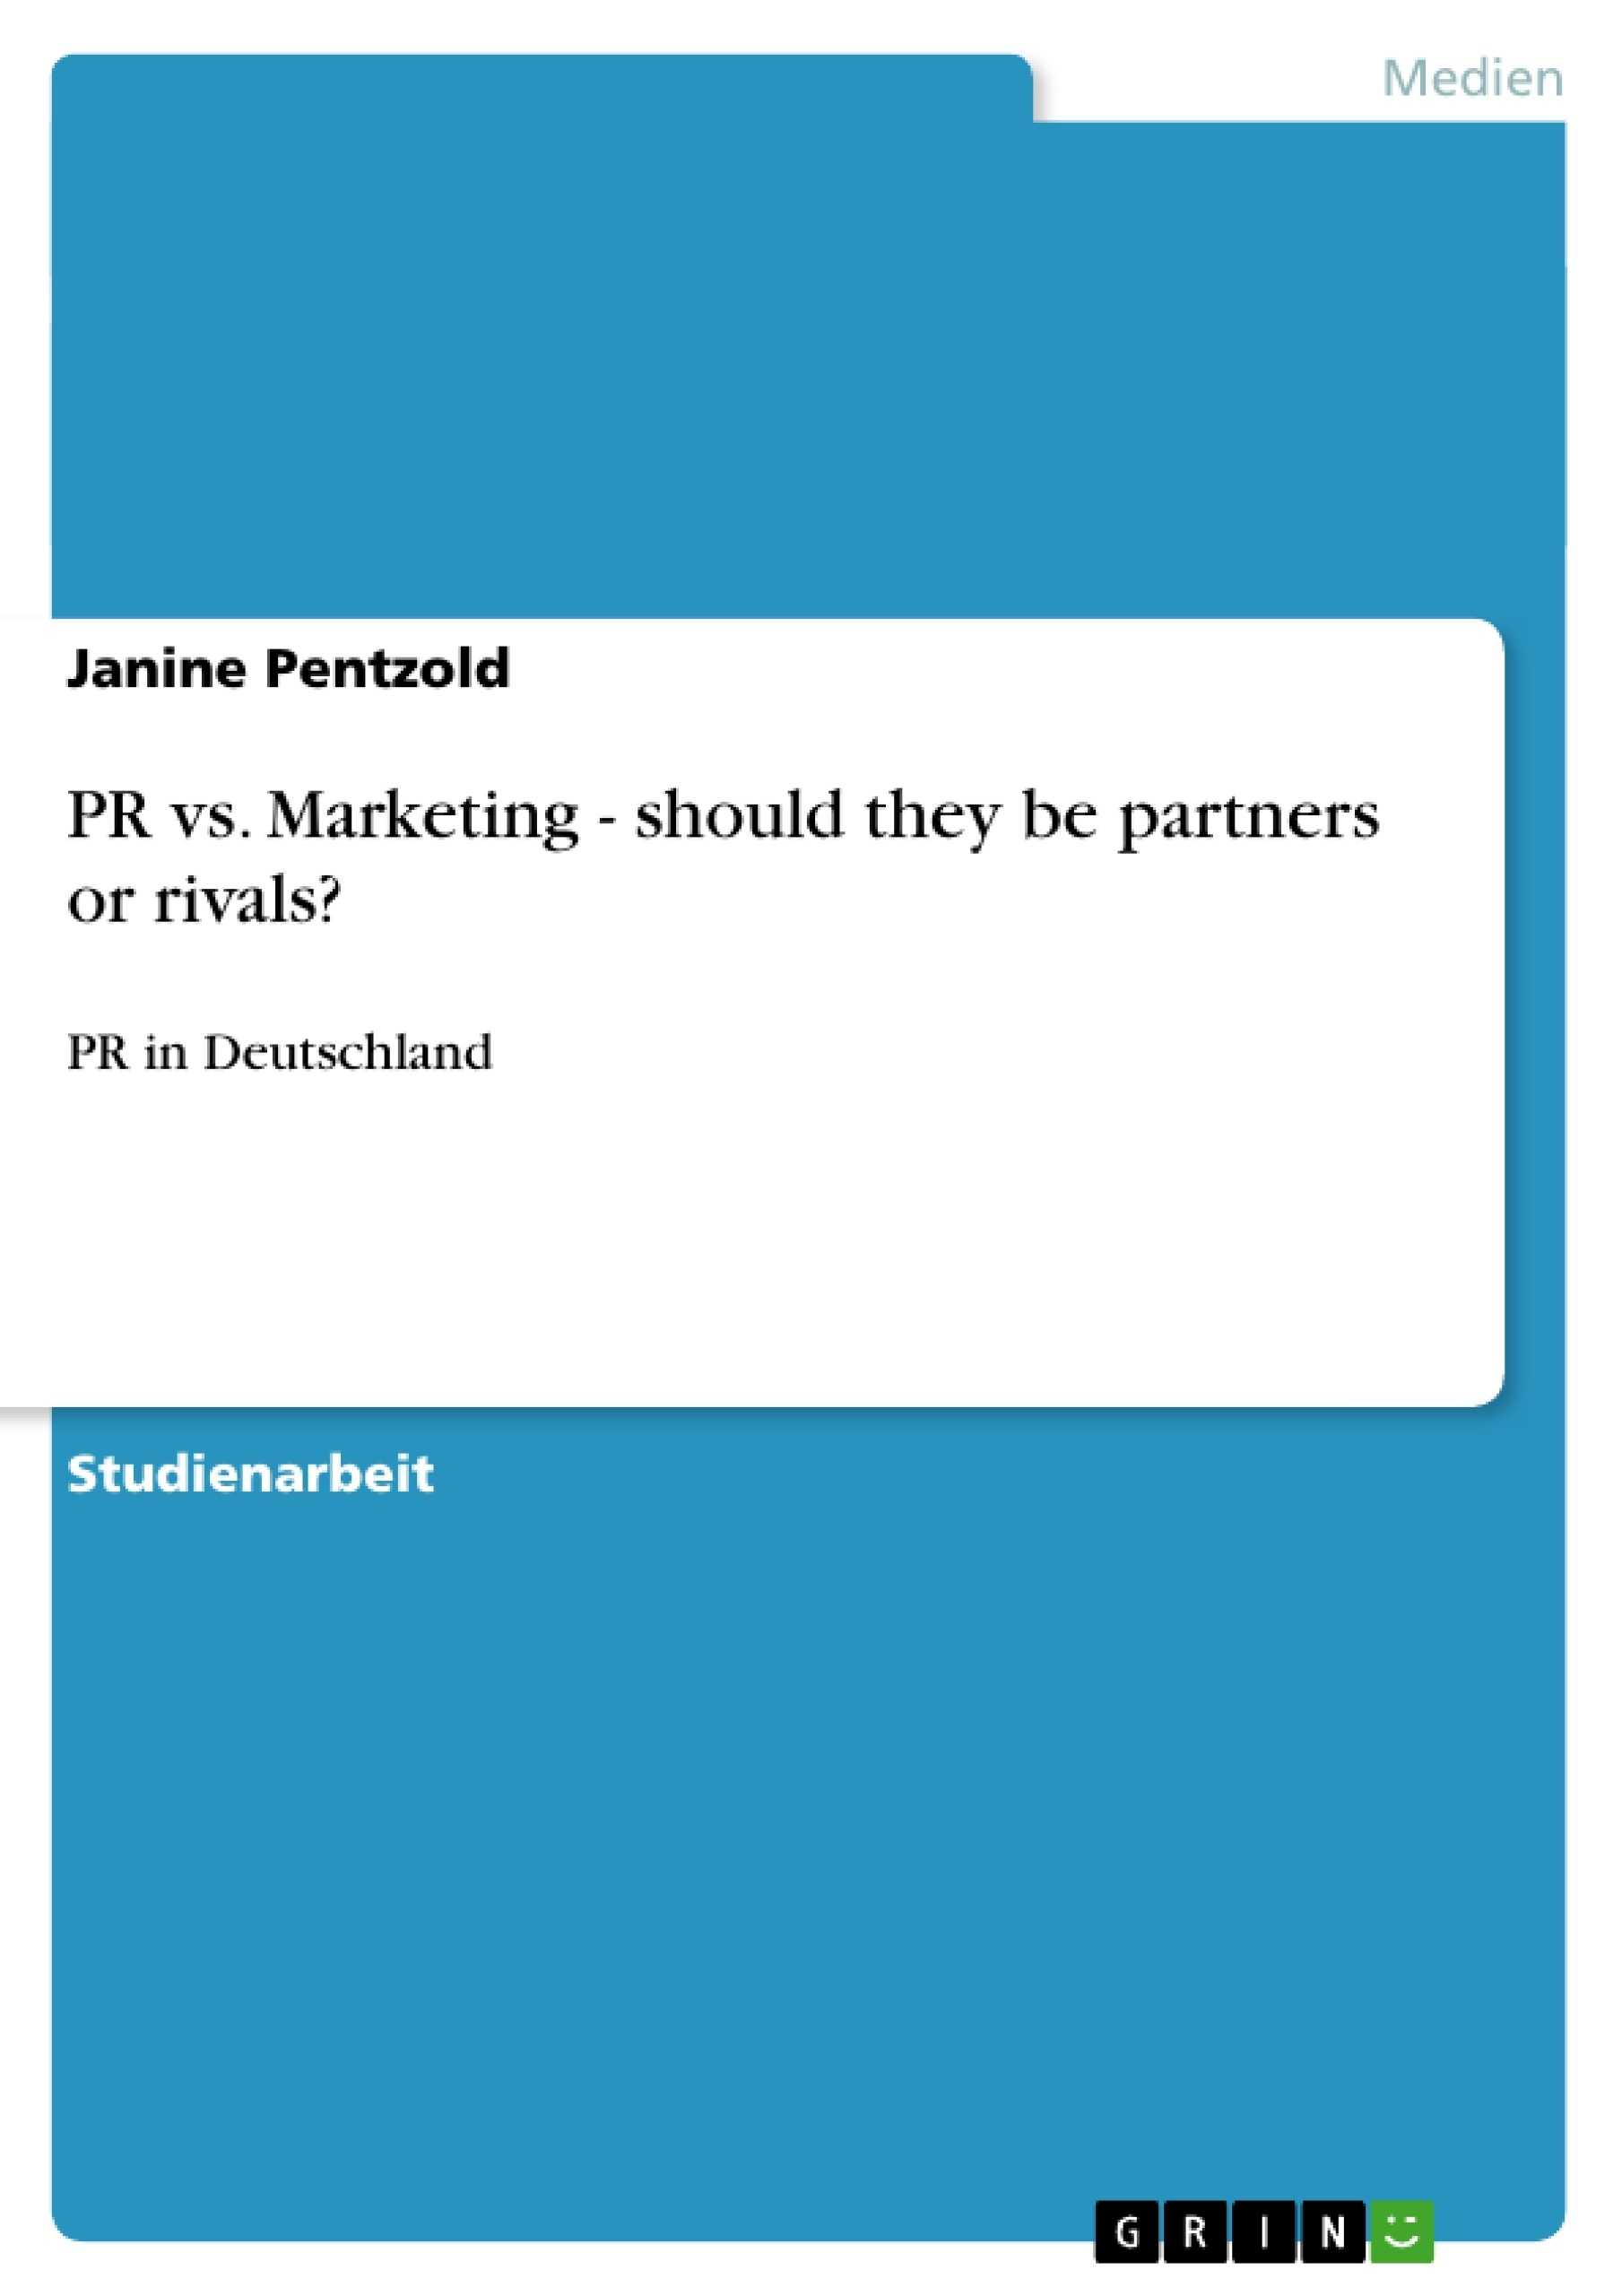 Titel: PR vs. Marketing - should they be partners or rivals?